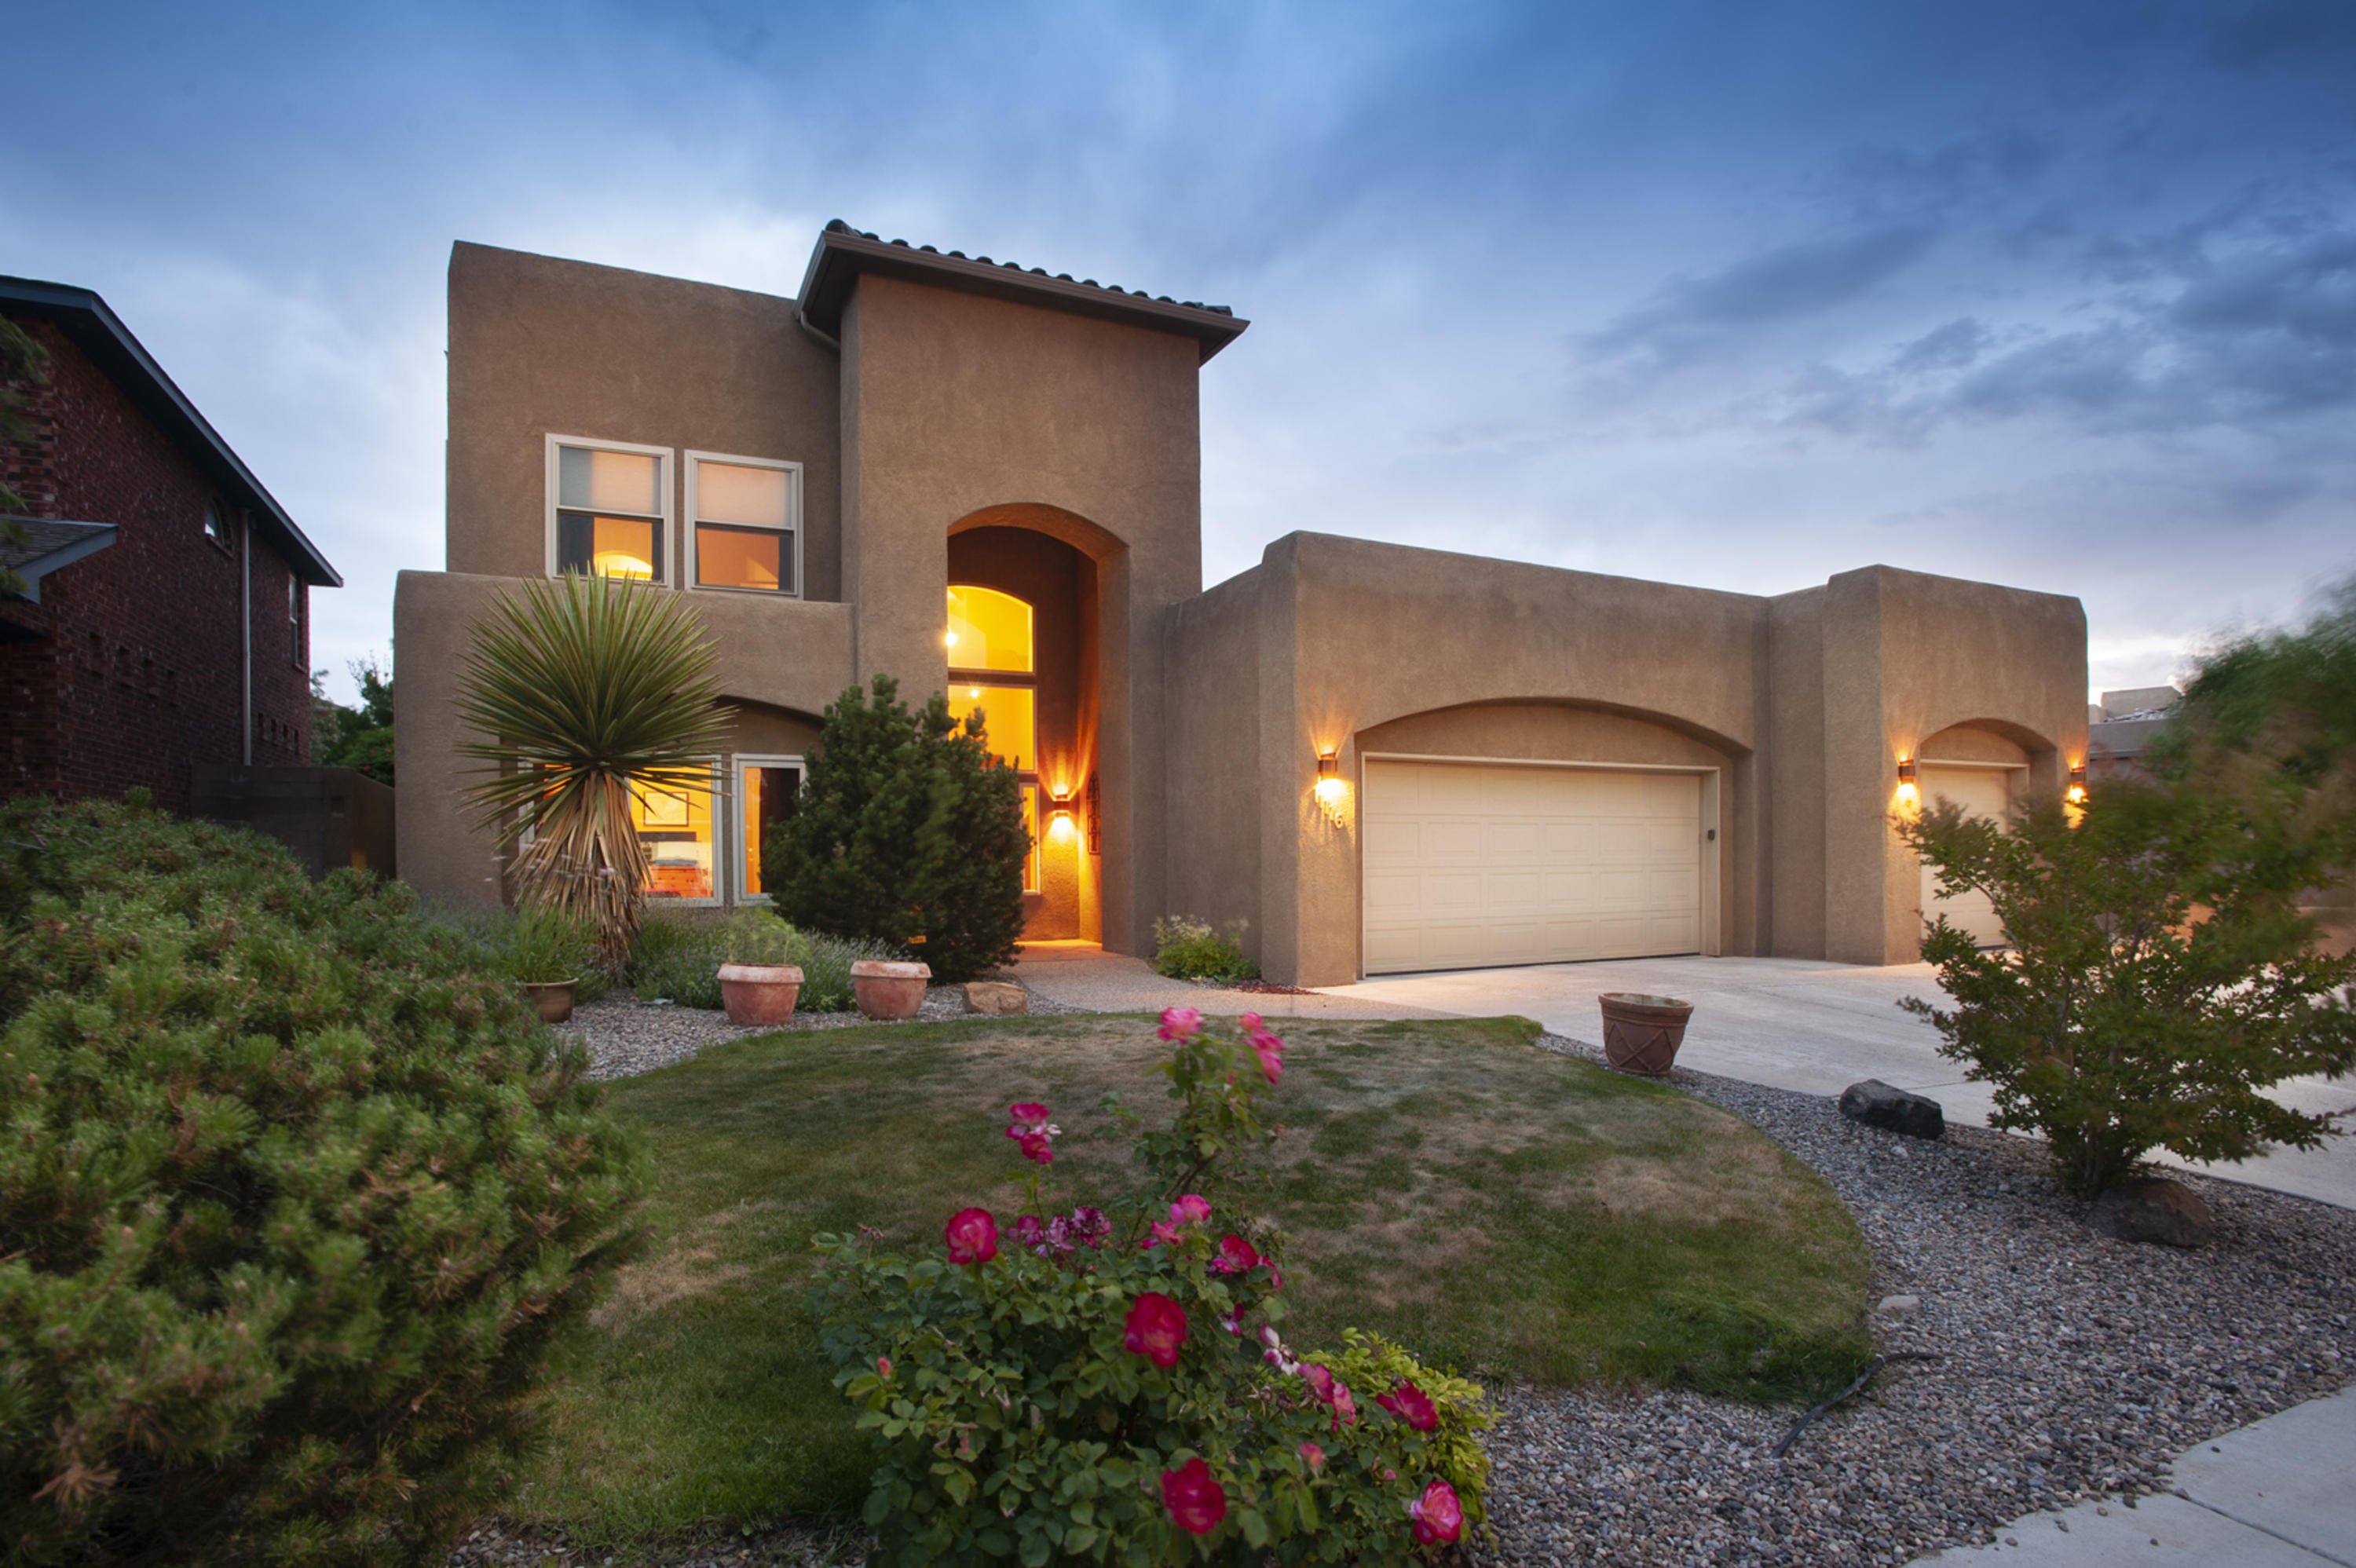 Welcome! Quintessence Neighbohood. Great schools! Beautiful custom contemporary SW style home.Casual elegance at its finest.Updates & Upgrades throughout.This 2 story home offers 4 BR's,study,3 full BA & 4 car tandem garage.(3rd bay heated & cooled w/office). 4th BR & BA main level.Gracious living rm w cozy FP. Formal dining/play rm. Gourmet Kitchen w island & seating bar. Breakfast dining too.Upstairs has the master suite w updated luxury bath. Spectacular yards.Mountain vistas. Open & covered patios.Room for adult entertaining & play structure for kiddos.Amenities: slate flrs,cherry hardwood flrs,ceiling fans,corian & granite counters,vessel sinks,6 burner gas stove,designer paint, arches, skylights,gutters&smart security system. HWH  '19 ,AC/Furnace '15,Windows,Double Oven,DW,Refrig '19